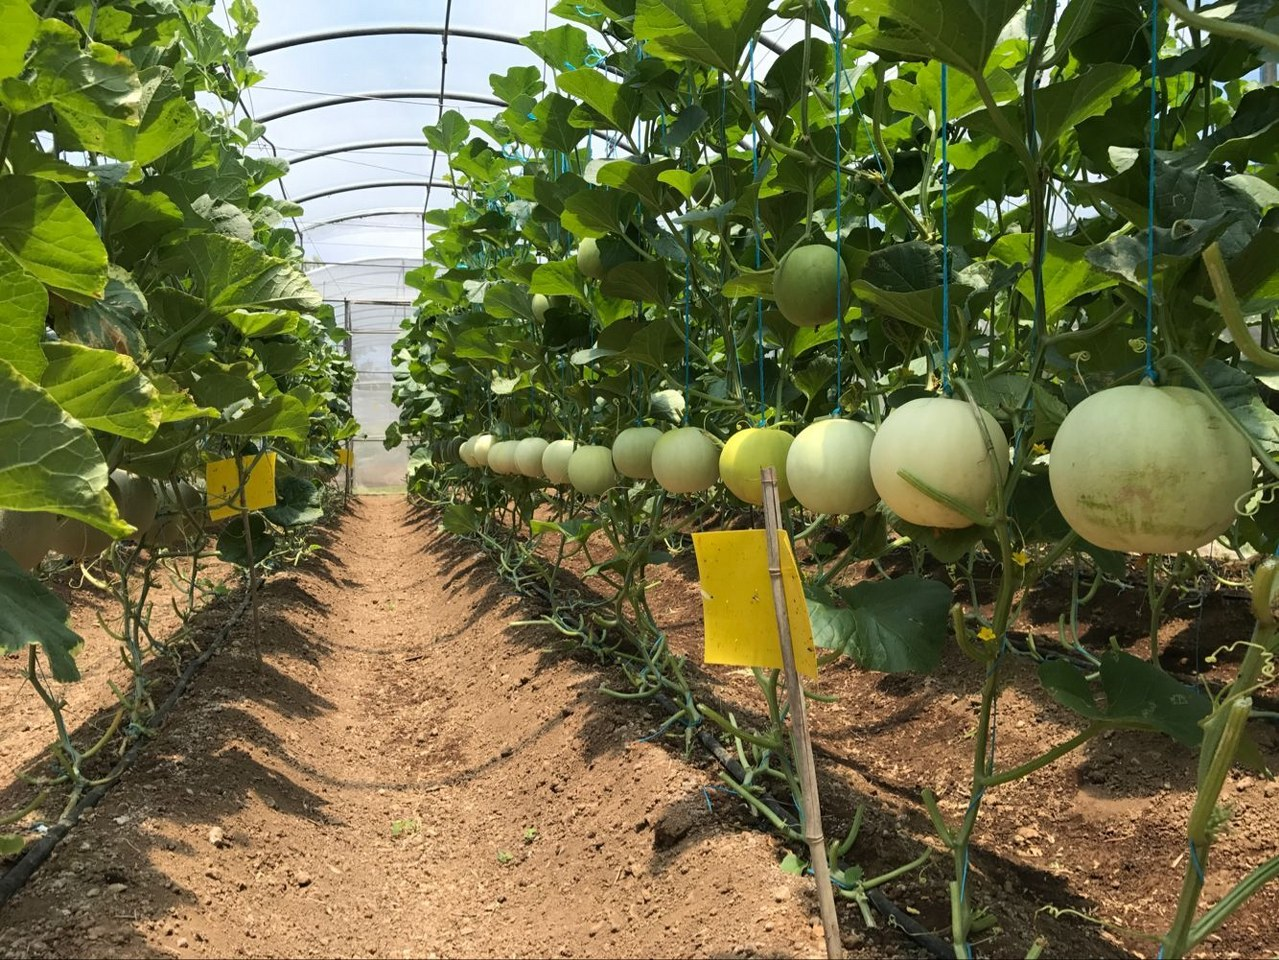 The Chinese Agricultural Technical Mission Introduced Cantaloupe Successfully on the Portsmouth Agricultural Station